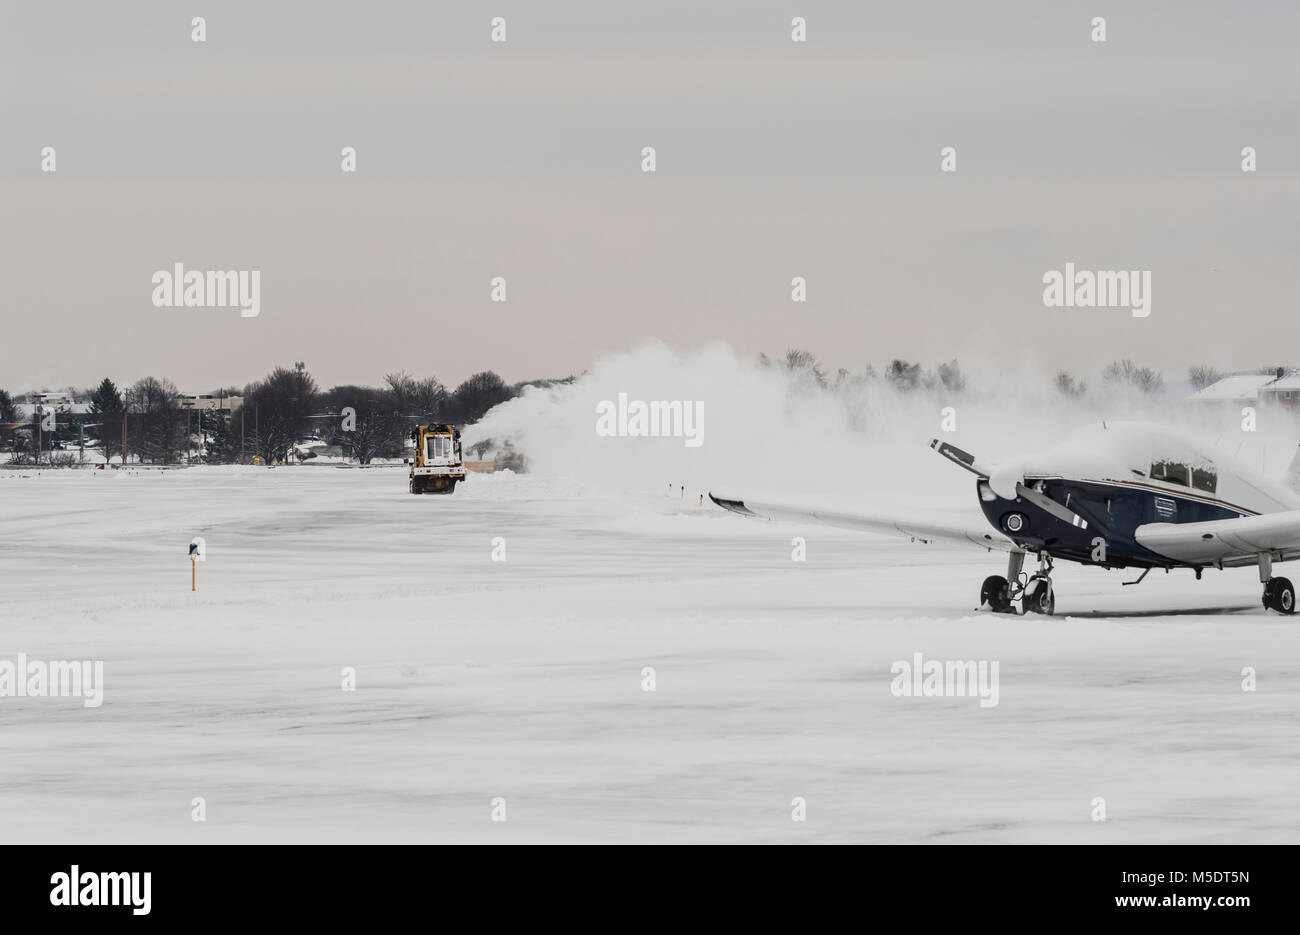 Snow Plow Small Regional Airport In Winter, Pennsylvania, USA - Stock Image